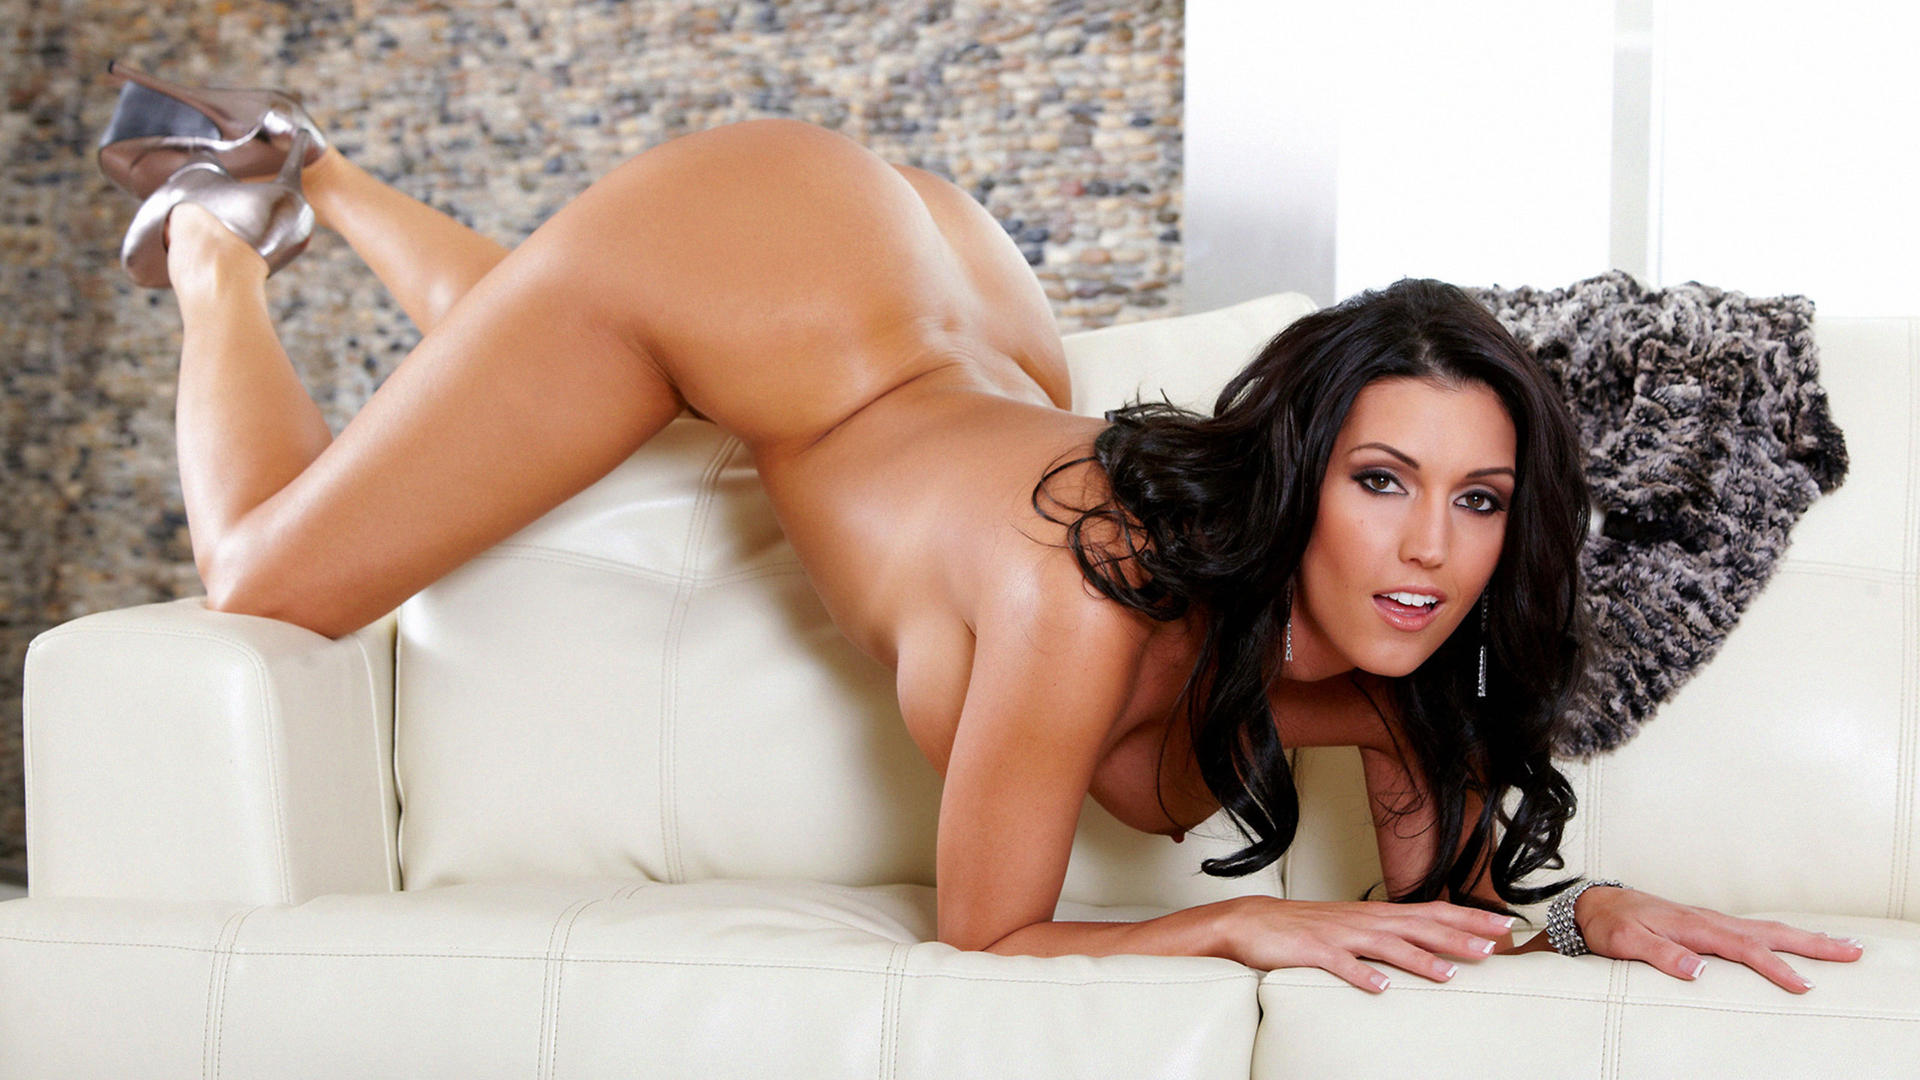 Dylan ryder curves in all the right places twistys 10